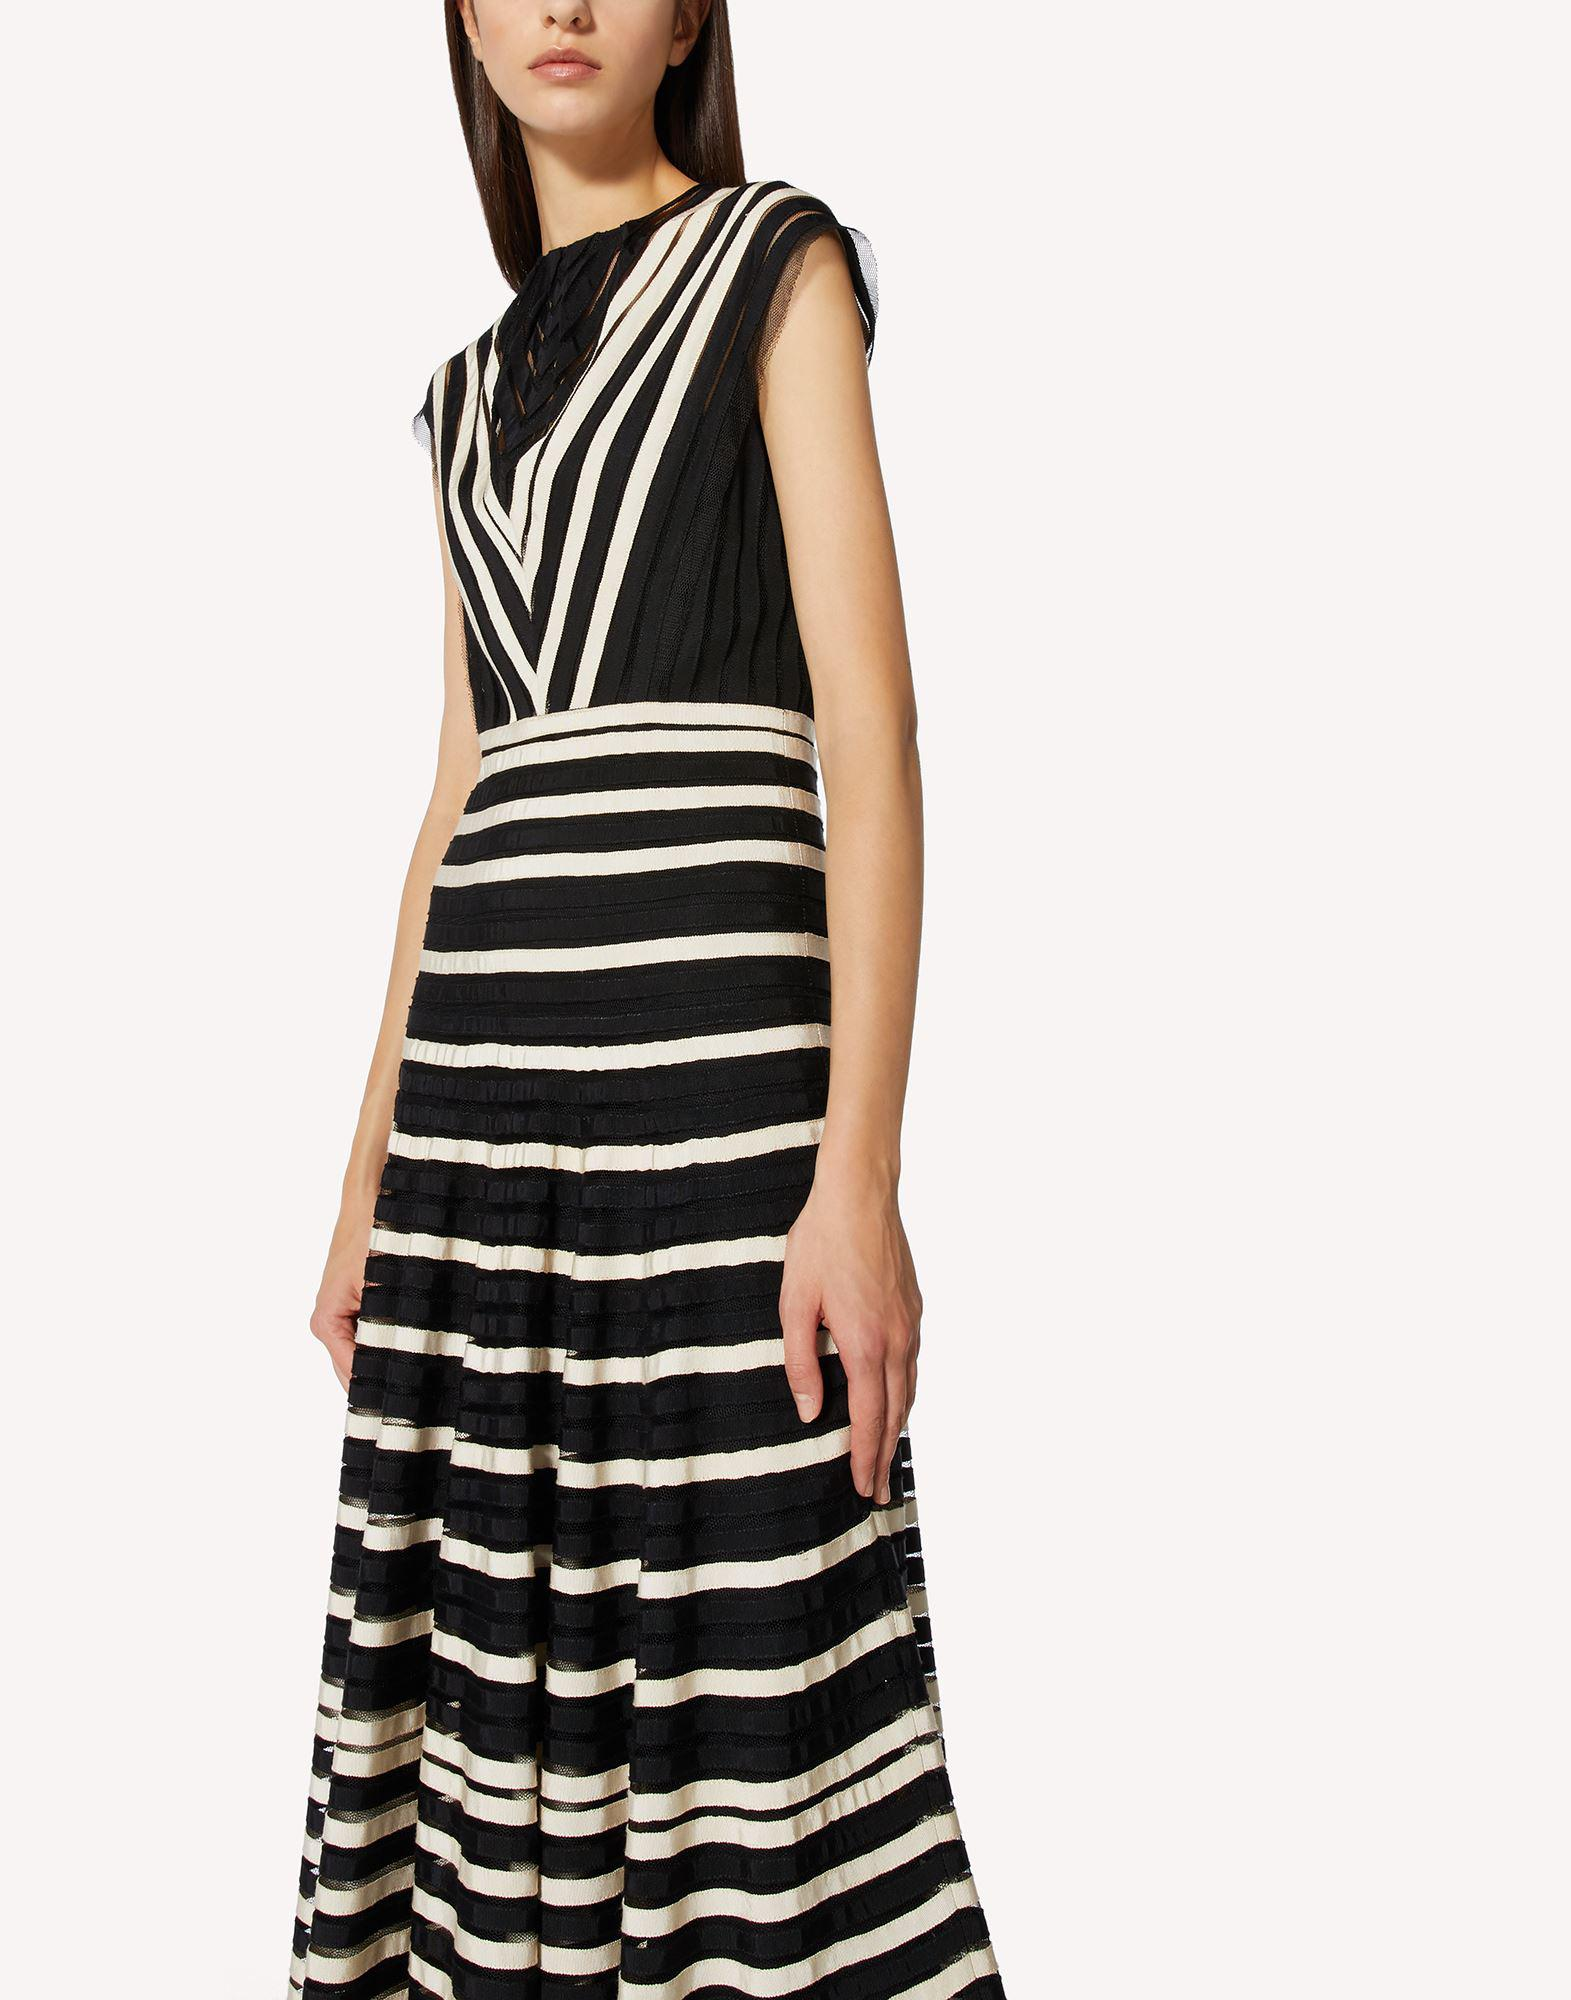 POINT D'ESPRIT TULLE DRESS WITH GROSGRAIN RIBBONS 3